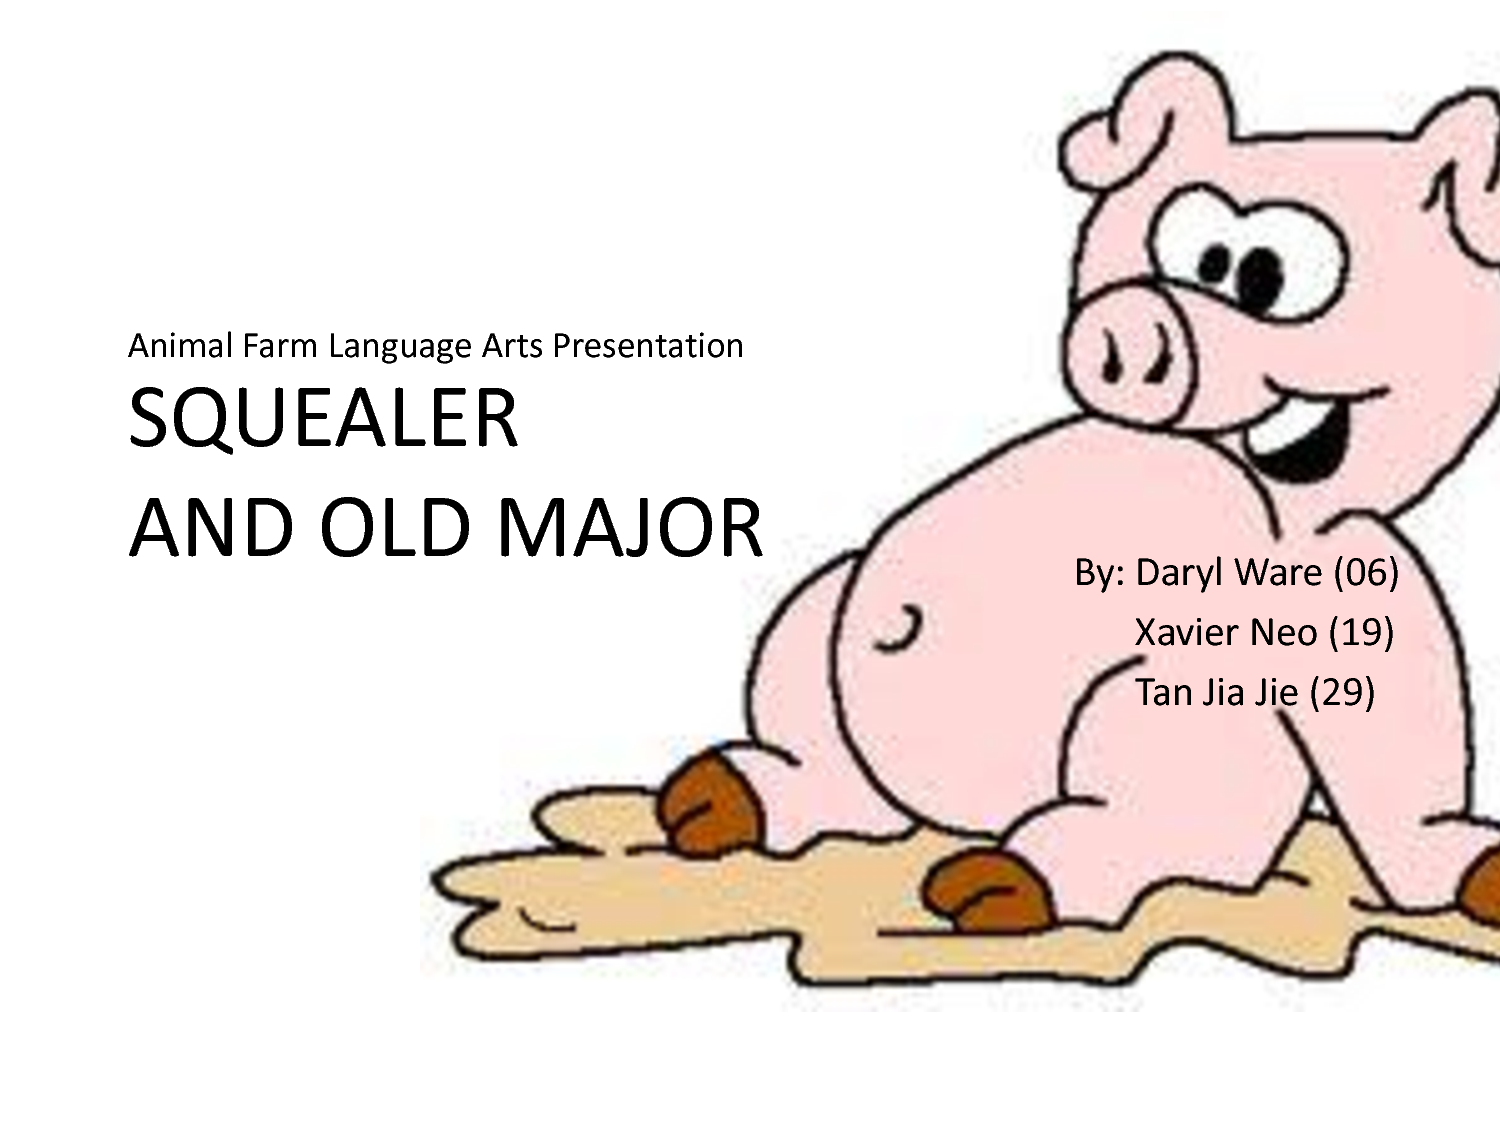 quotes for animal farm essay Animal farm: boxer's downfall - with a free essay review - free essay reviews.